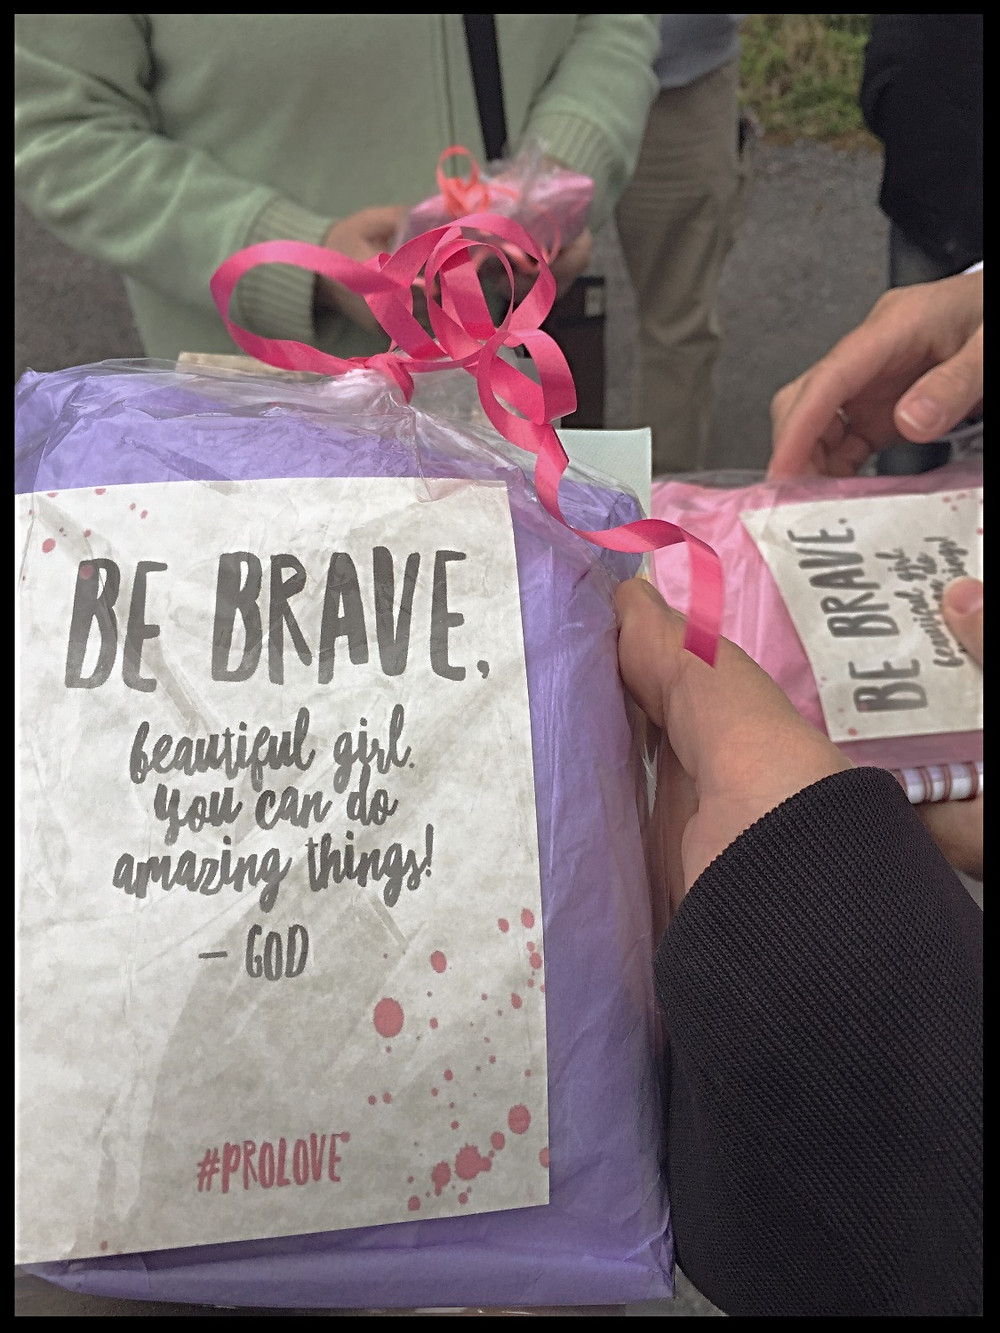 "Our gift packets say, ""Be Brave. beautiful girl, you can do amazing things! - God. #PROLOVE"